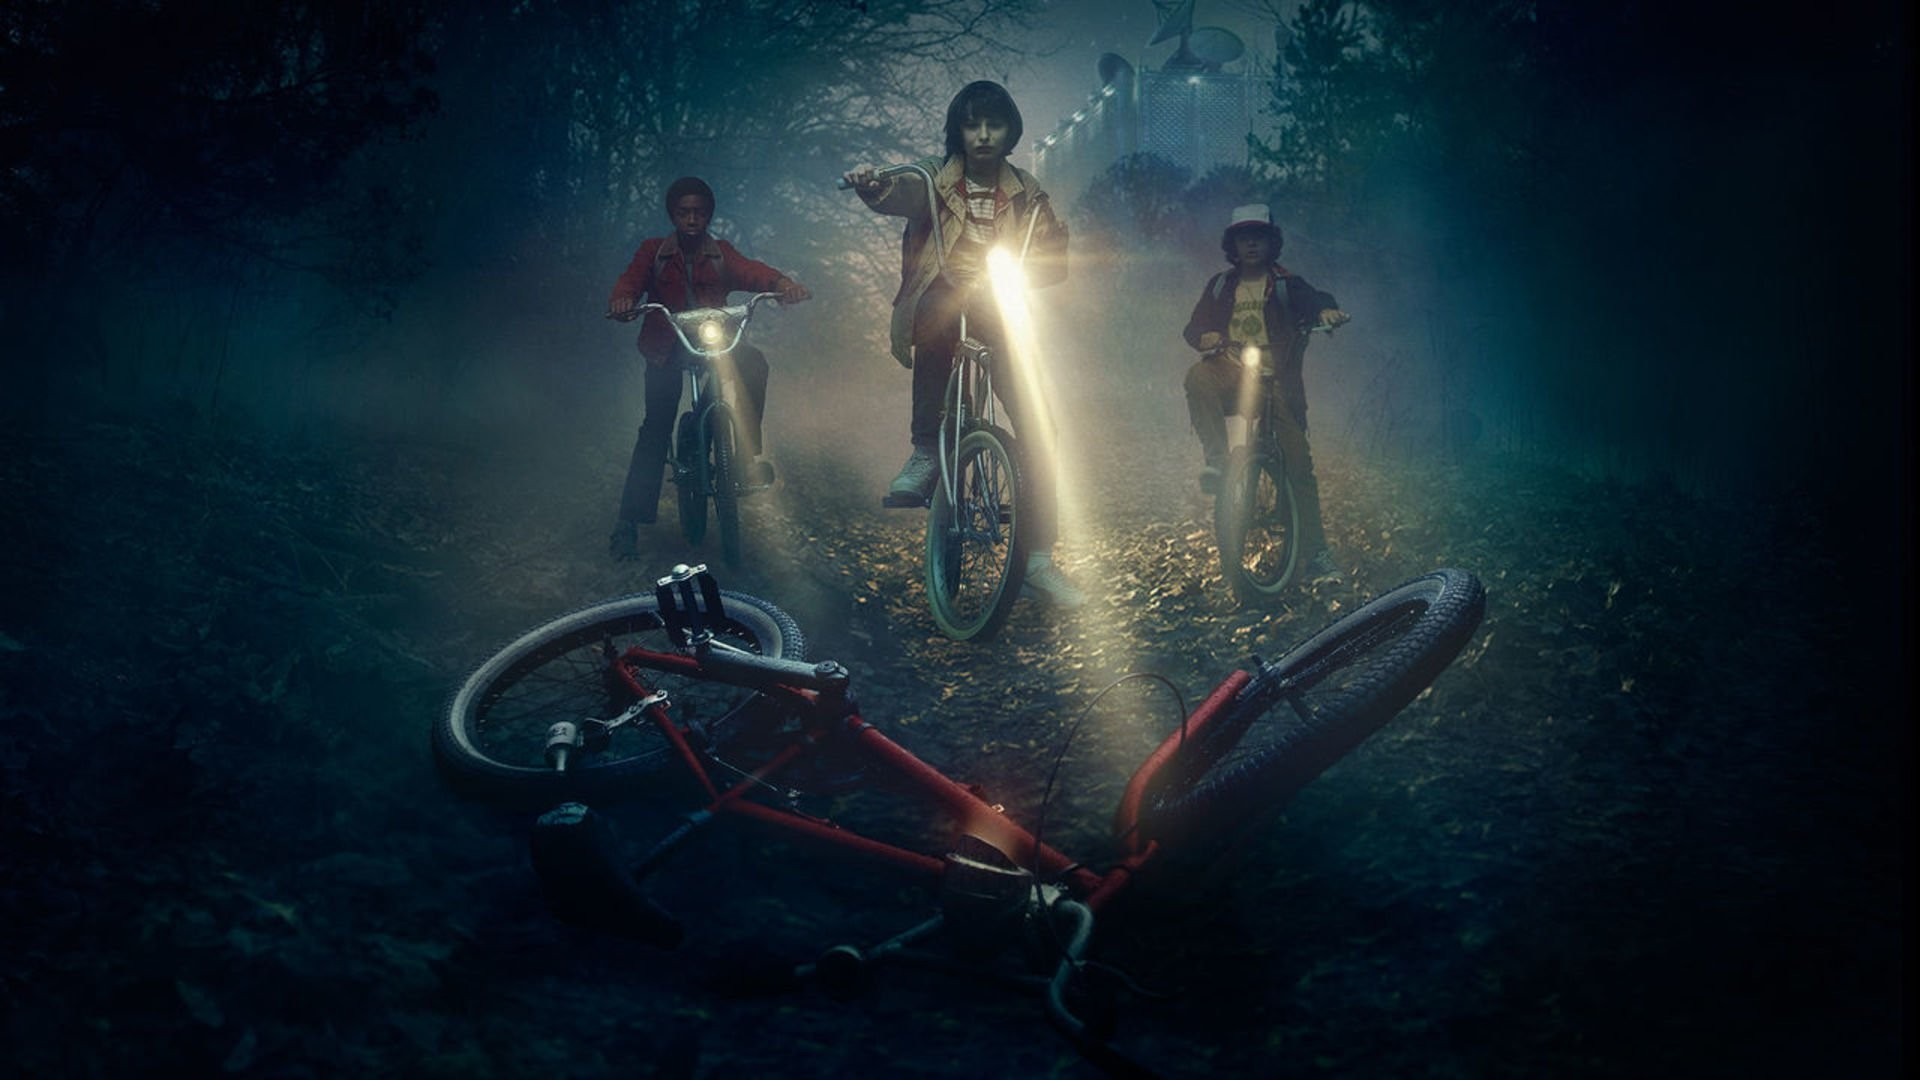 Stranger things fondo bicicleta.jpg